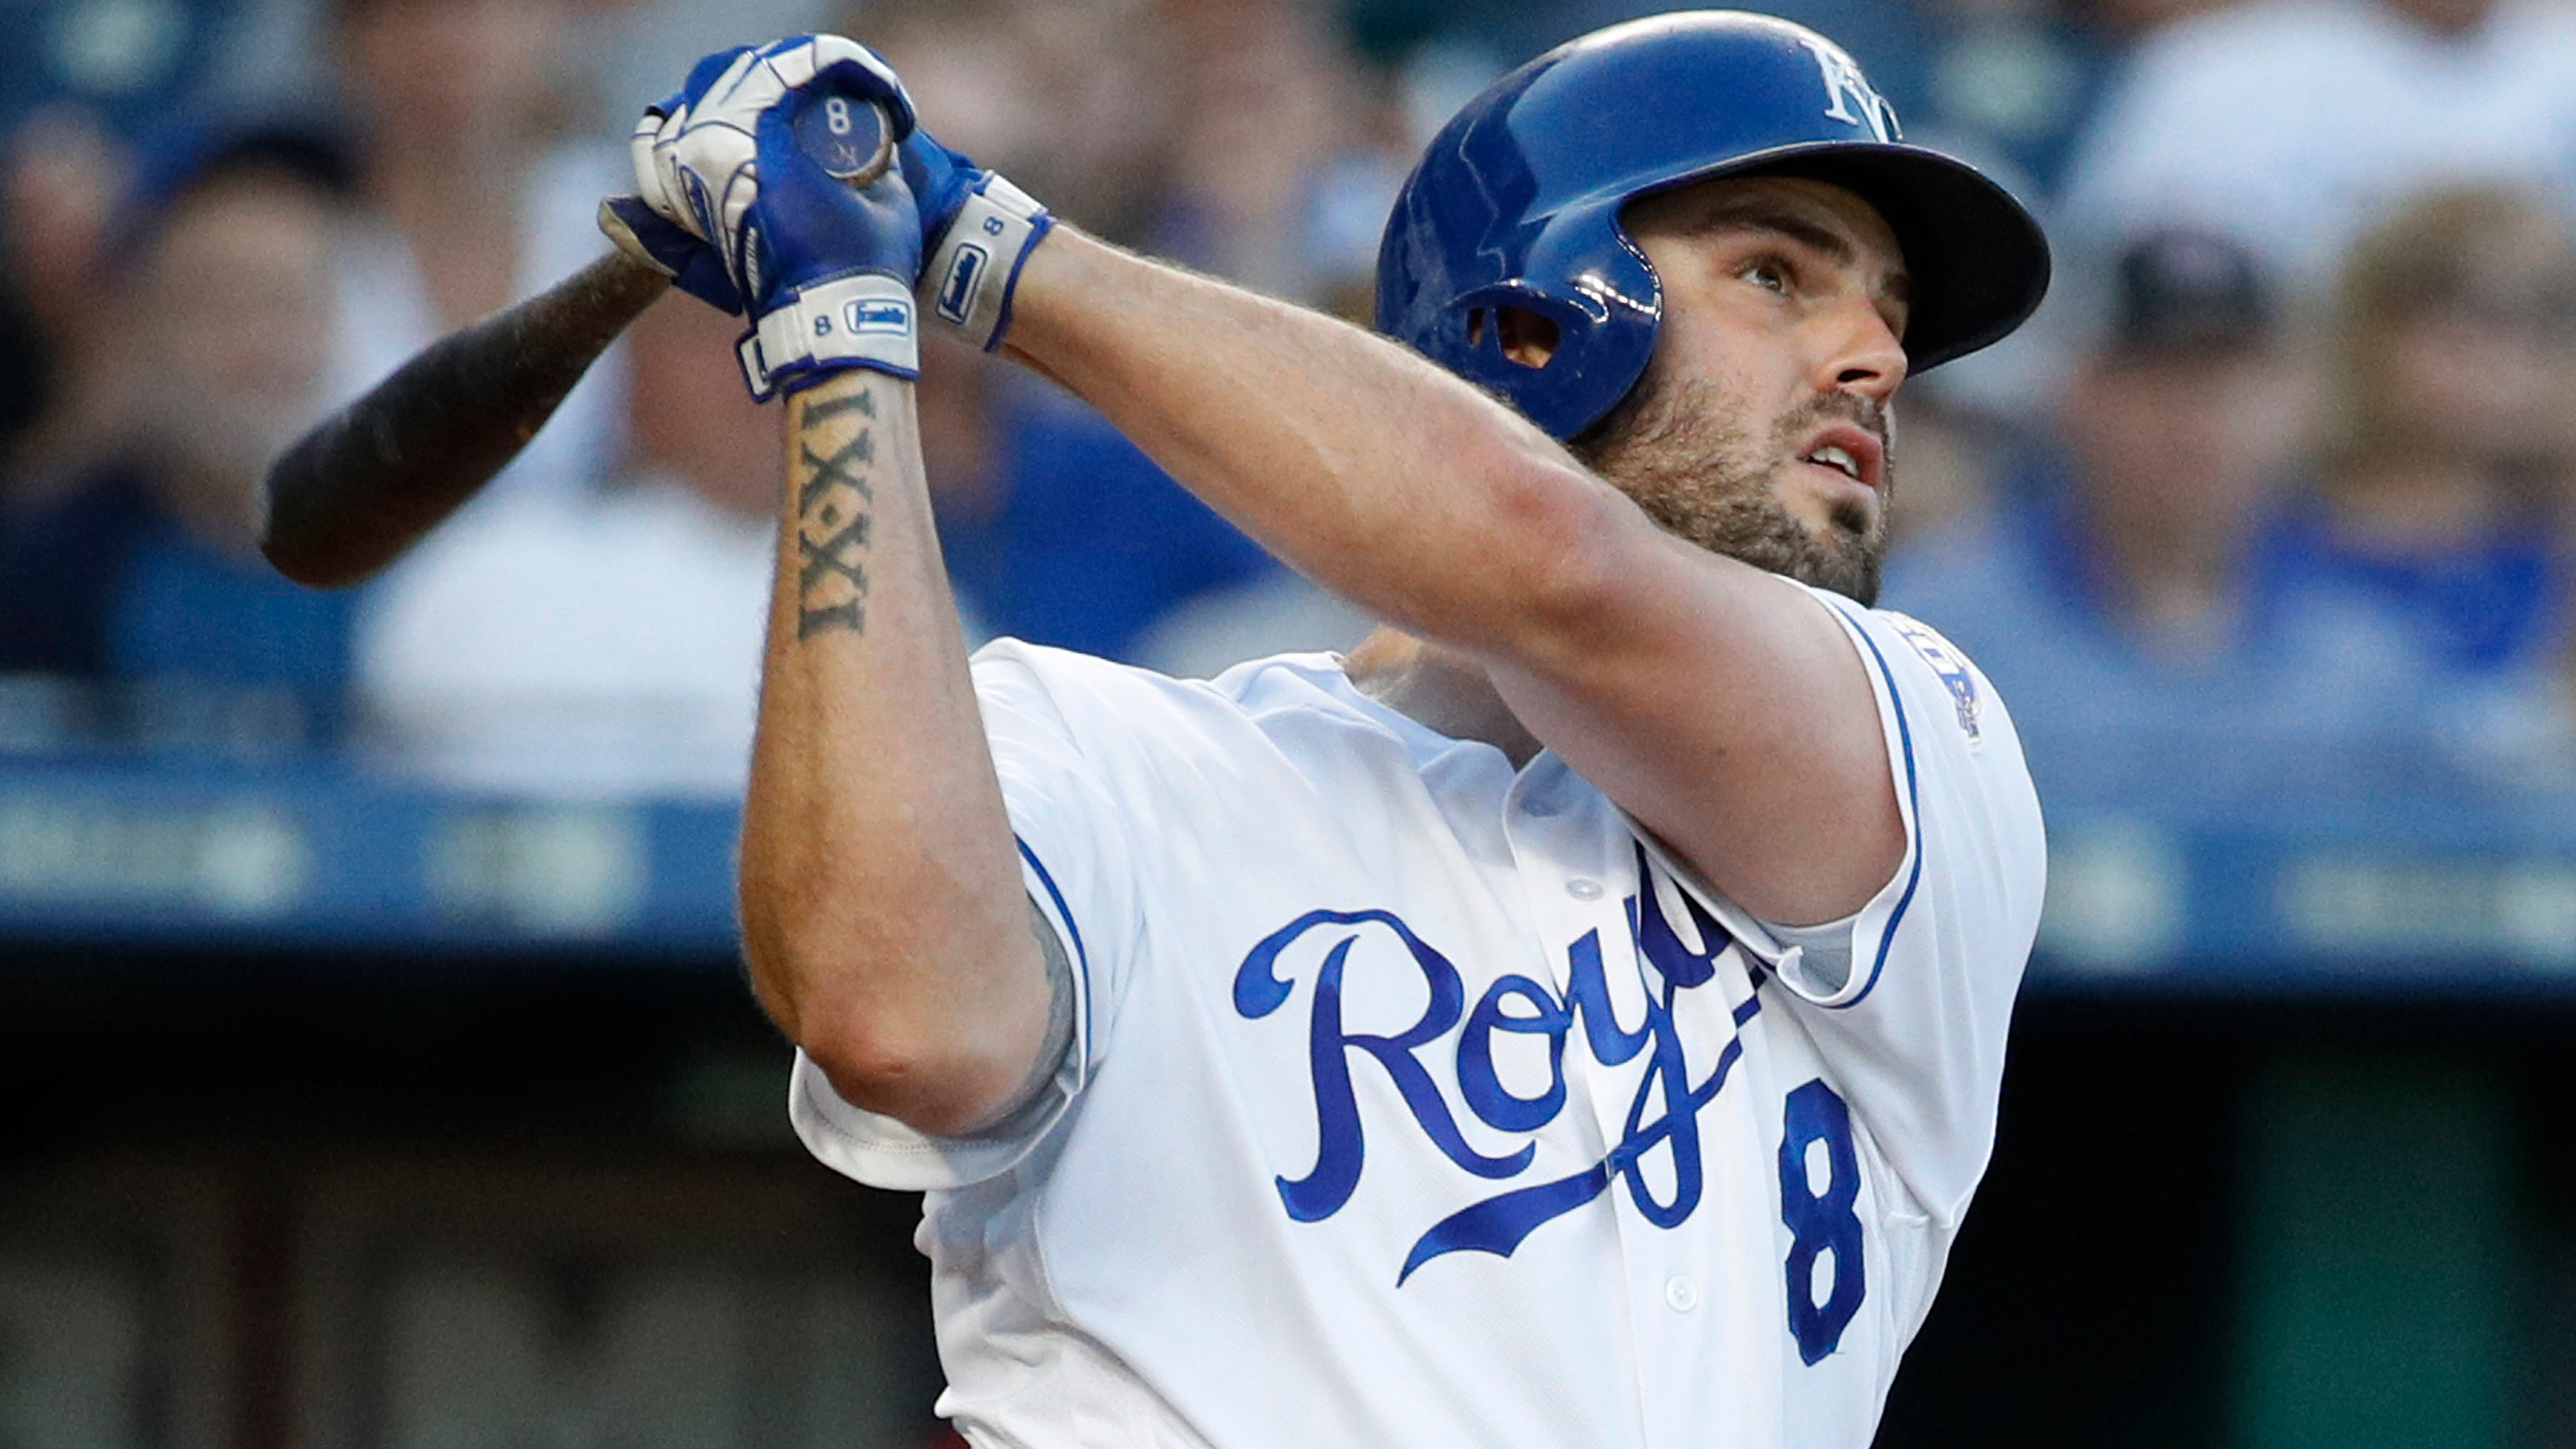 Royals deal Moustakas to the Brewers for two prospects